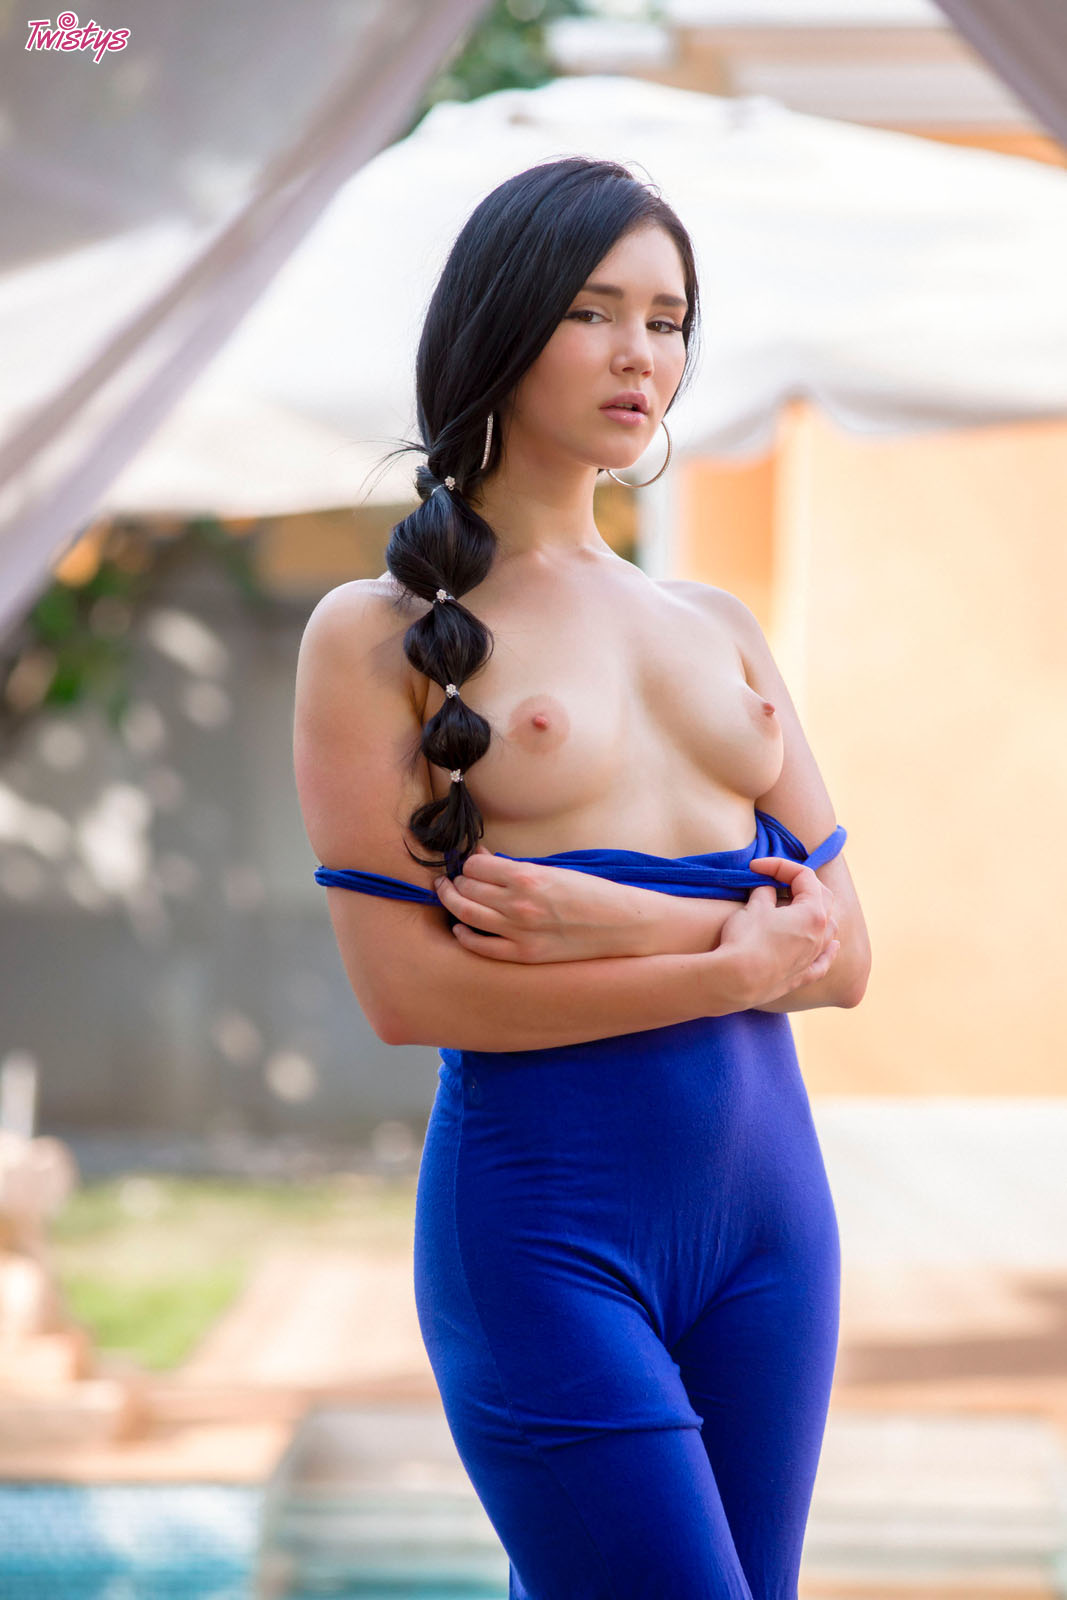 Erotic Model Long Dress 8